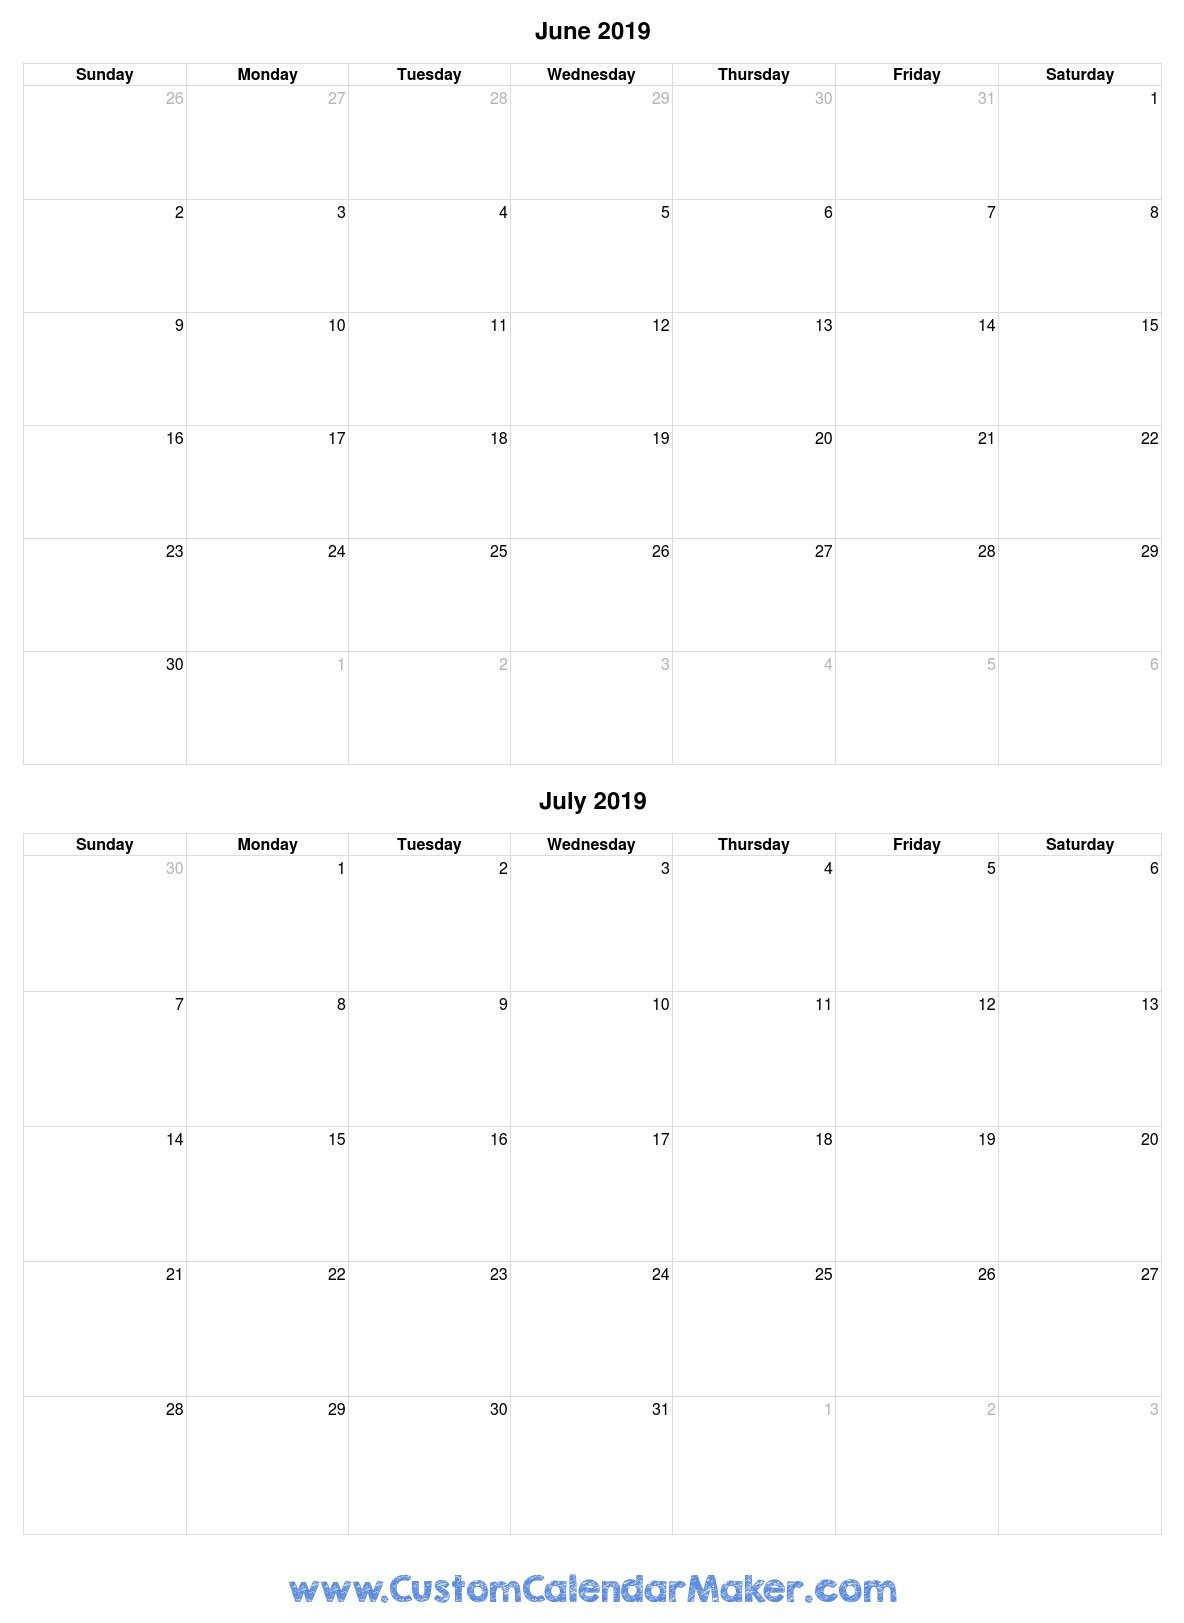 June And July 2019 Free Printable Calendar Template Calendar 2019 June July